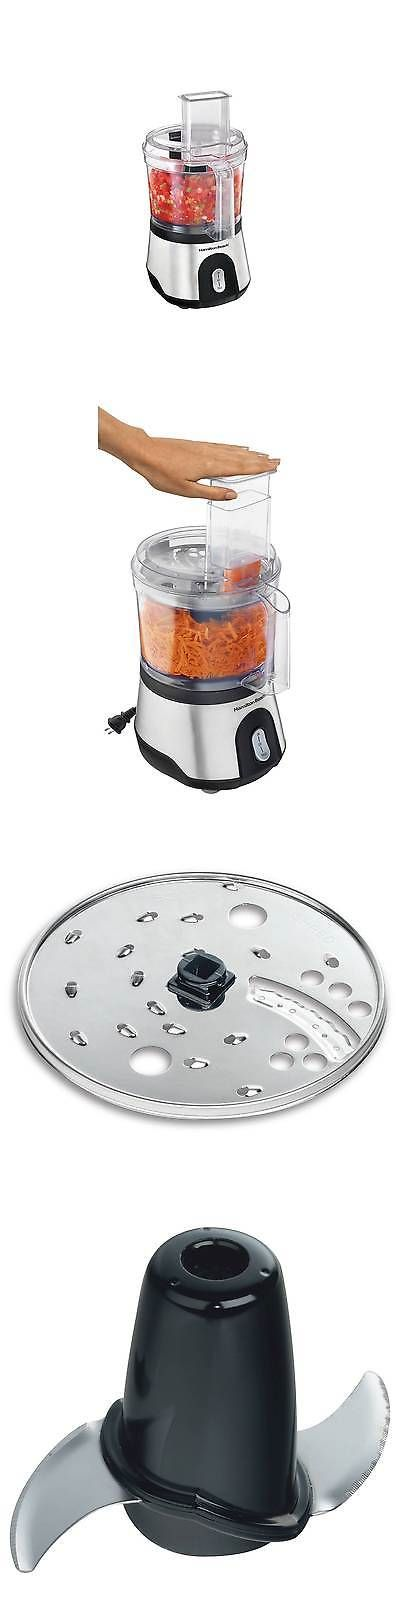 Small Kitchen Appliances: Hamilton Beach 10 Cup Food Processor- Stainless 70760 -> BUY IT NOW ONLY: $49.49 on eBay!